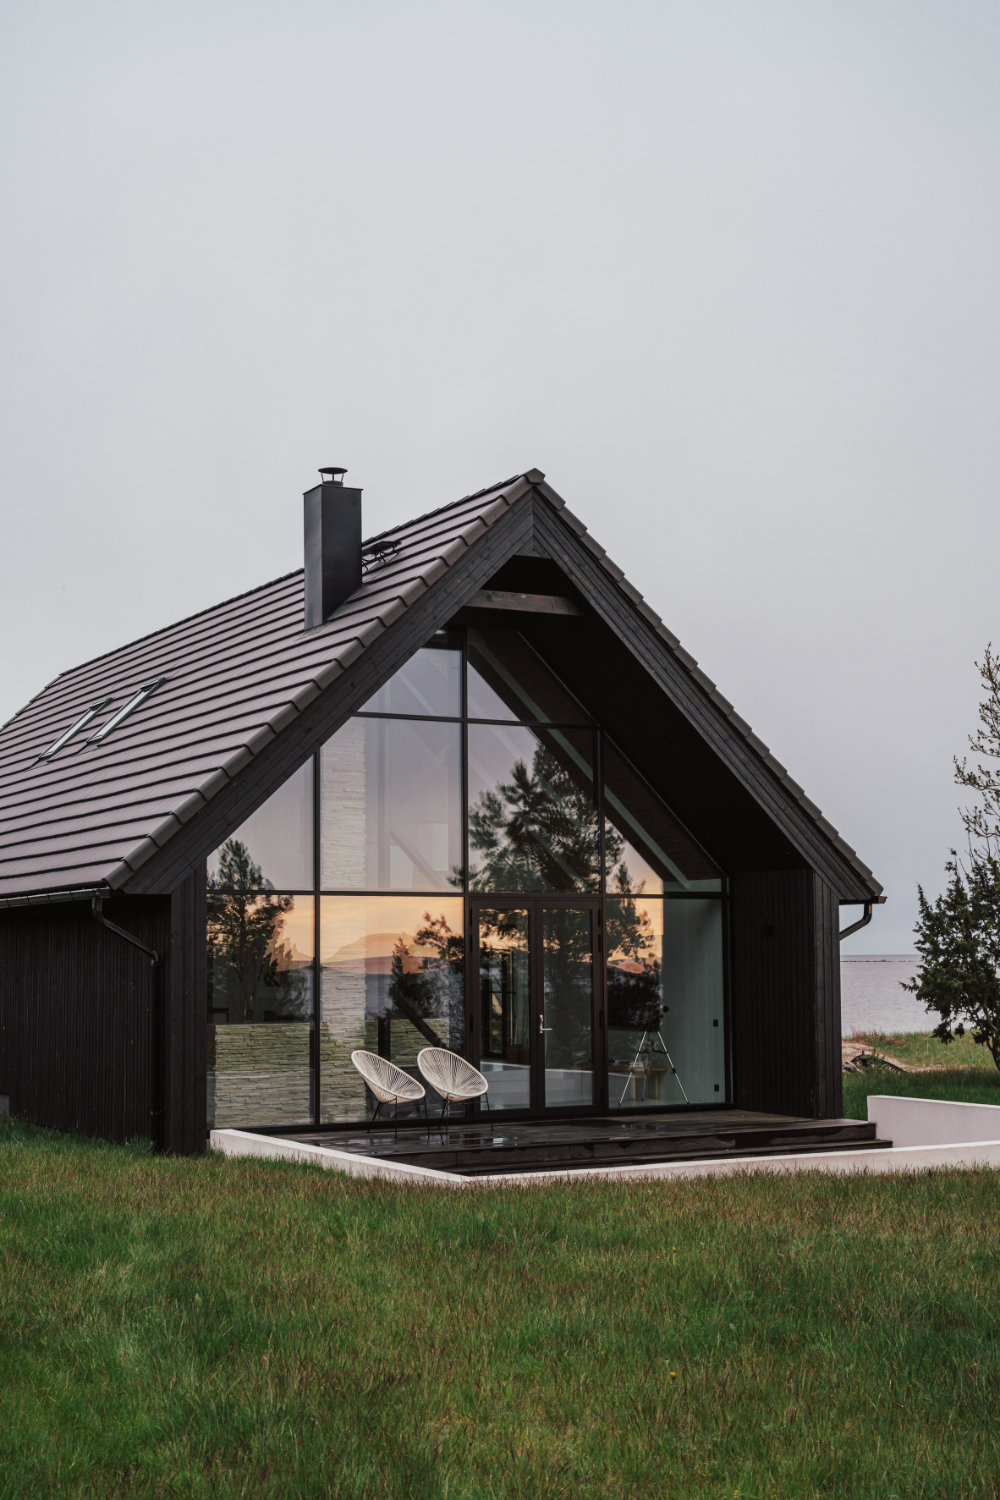 Summer house on an Estonian beach formed of two black gabled volumes